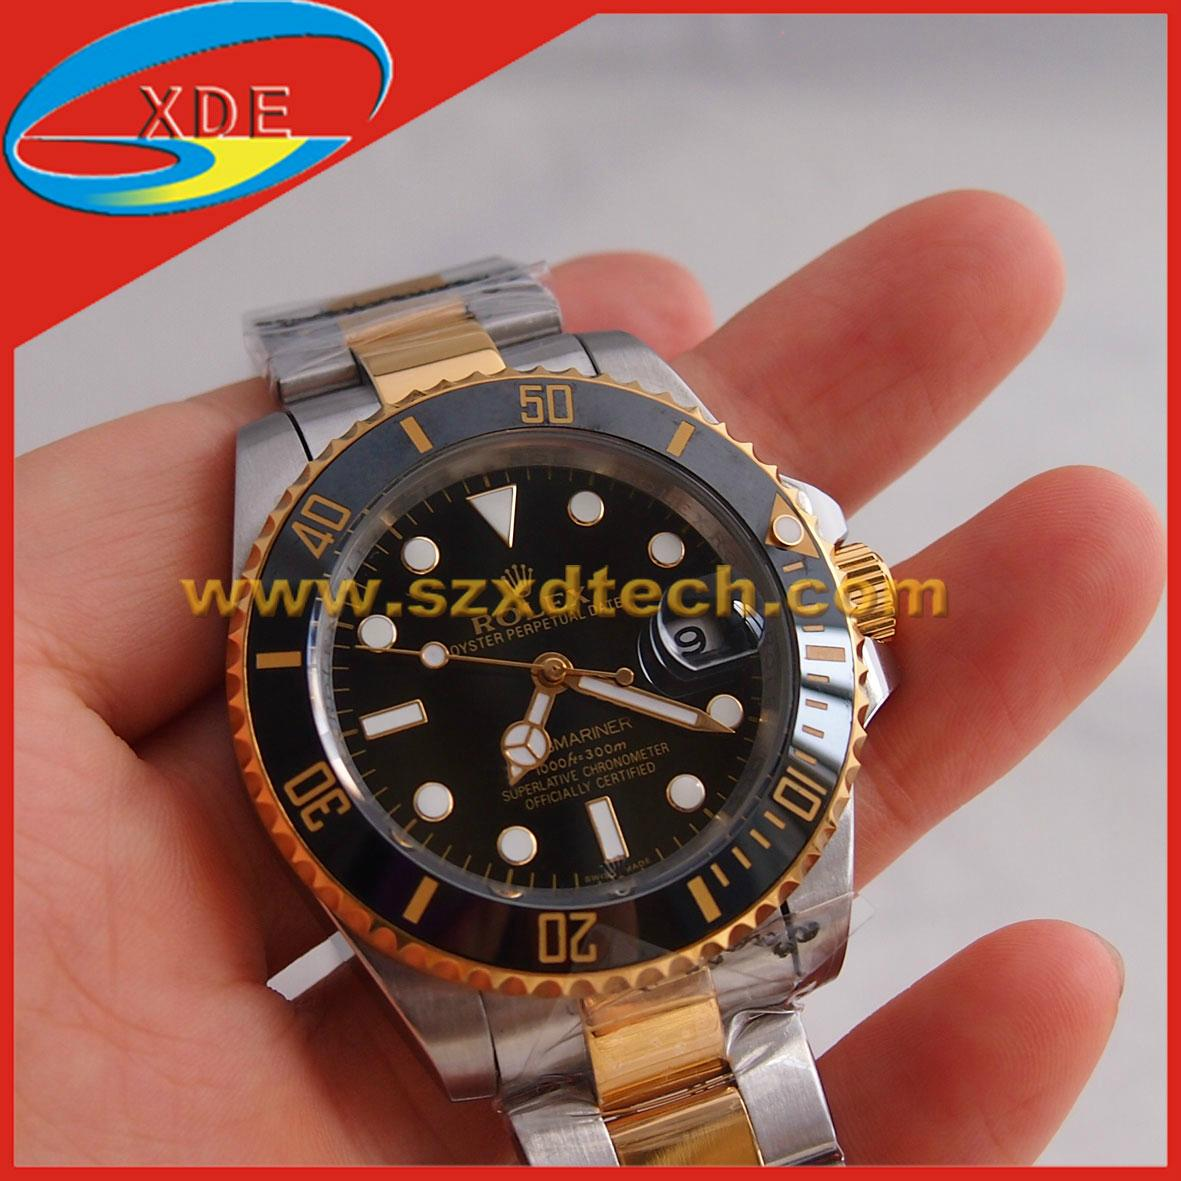 Rolex Watches OYSTER PERPETUAL SUBMARINER Clone Gold or Silver Belt All Colors 1